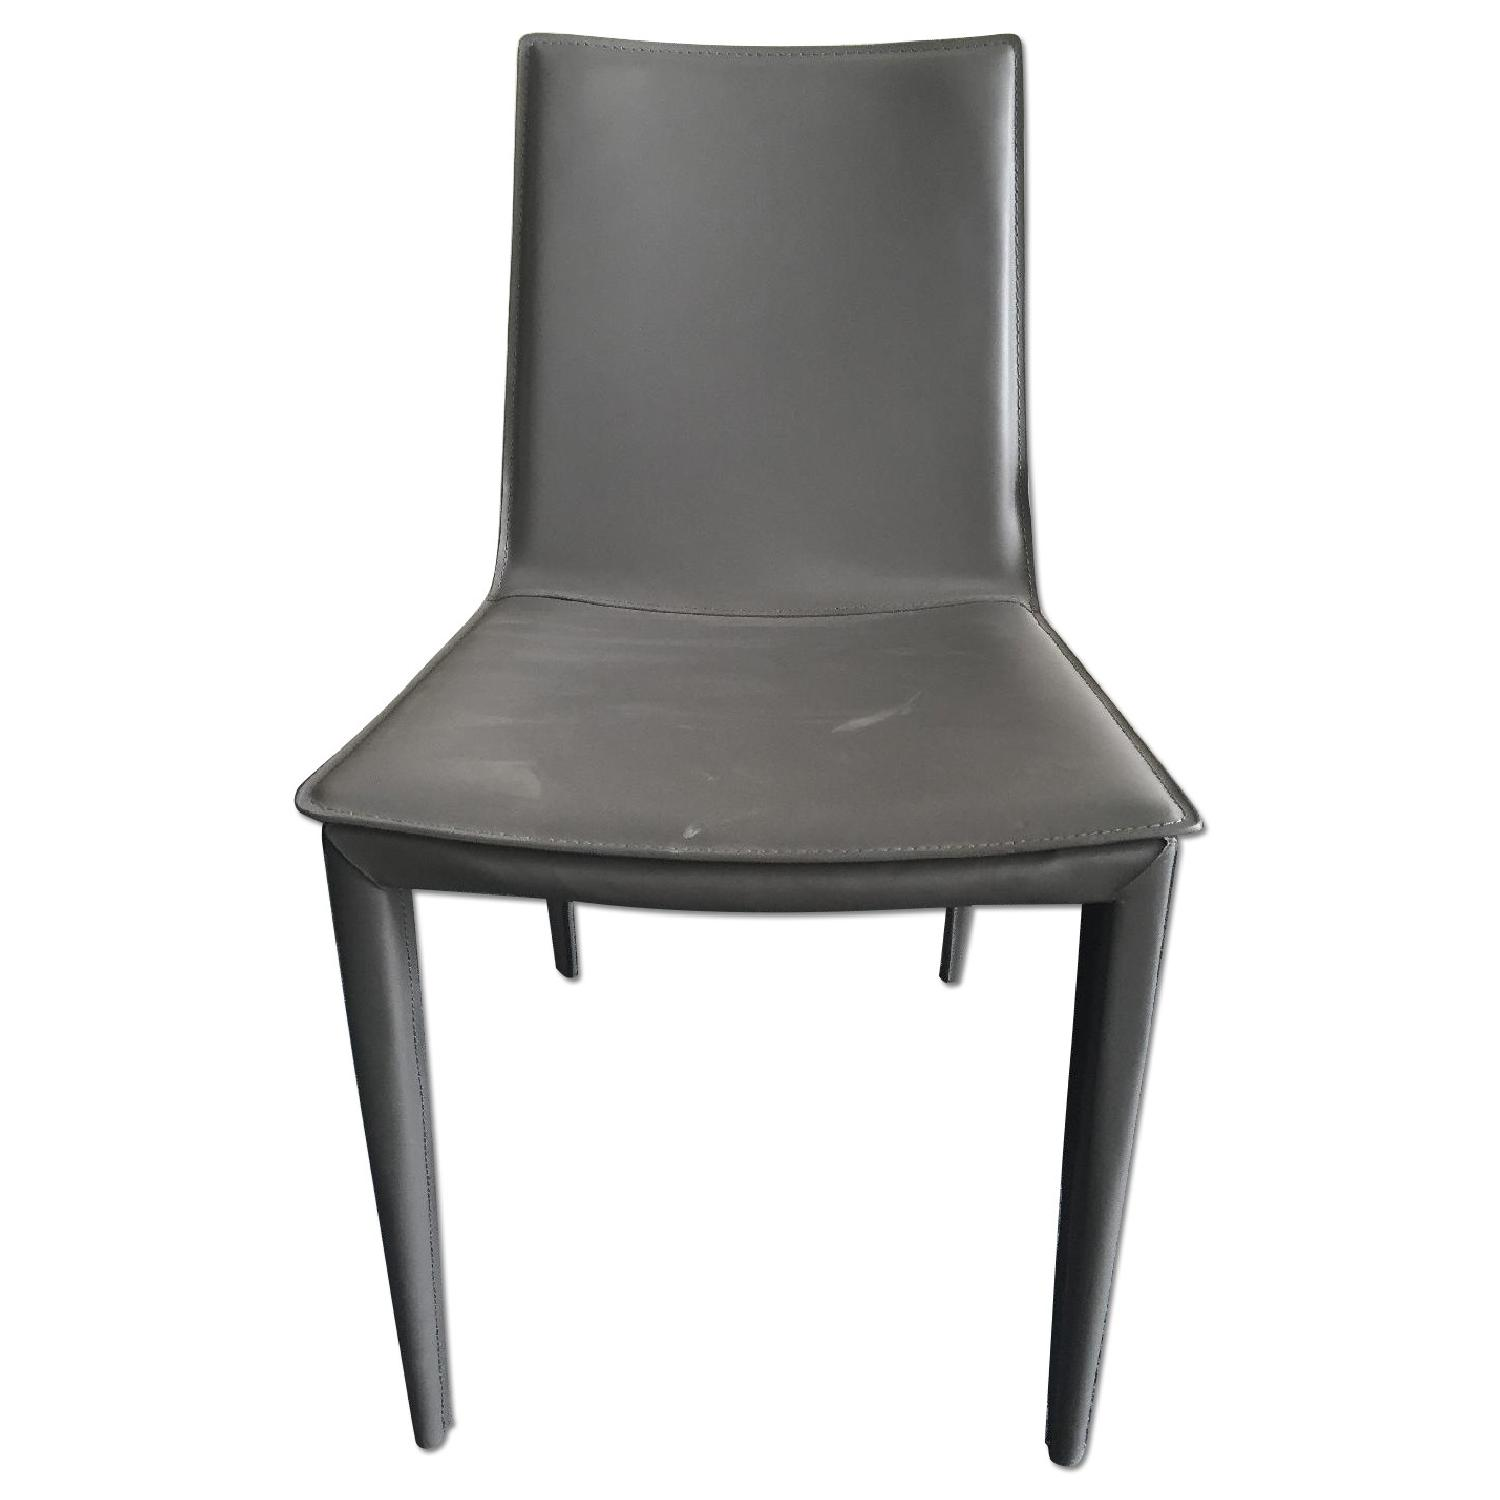 Lazzoni Grey Dining Chair - image-0